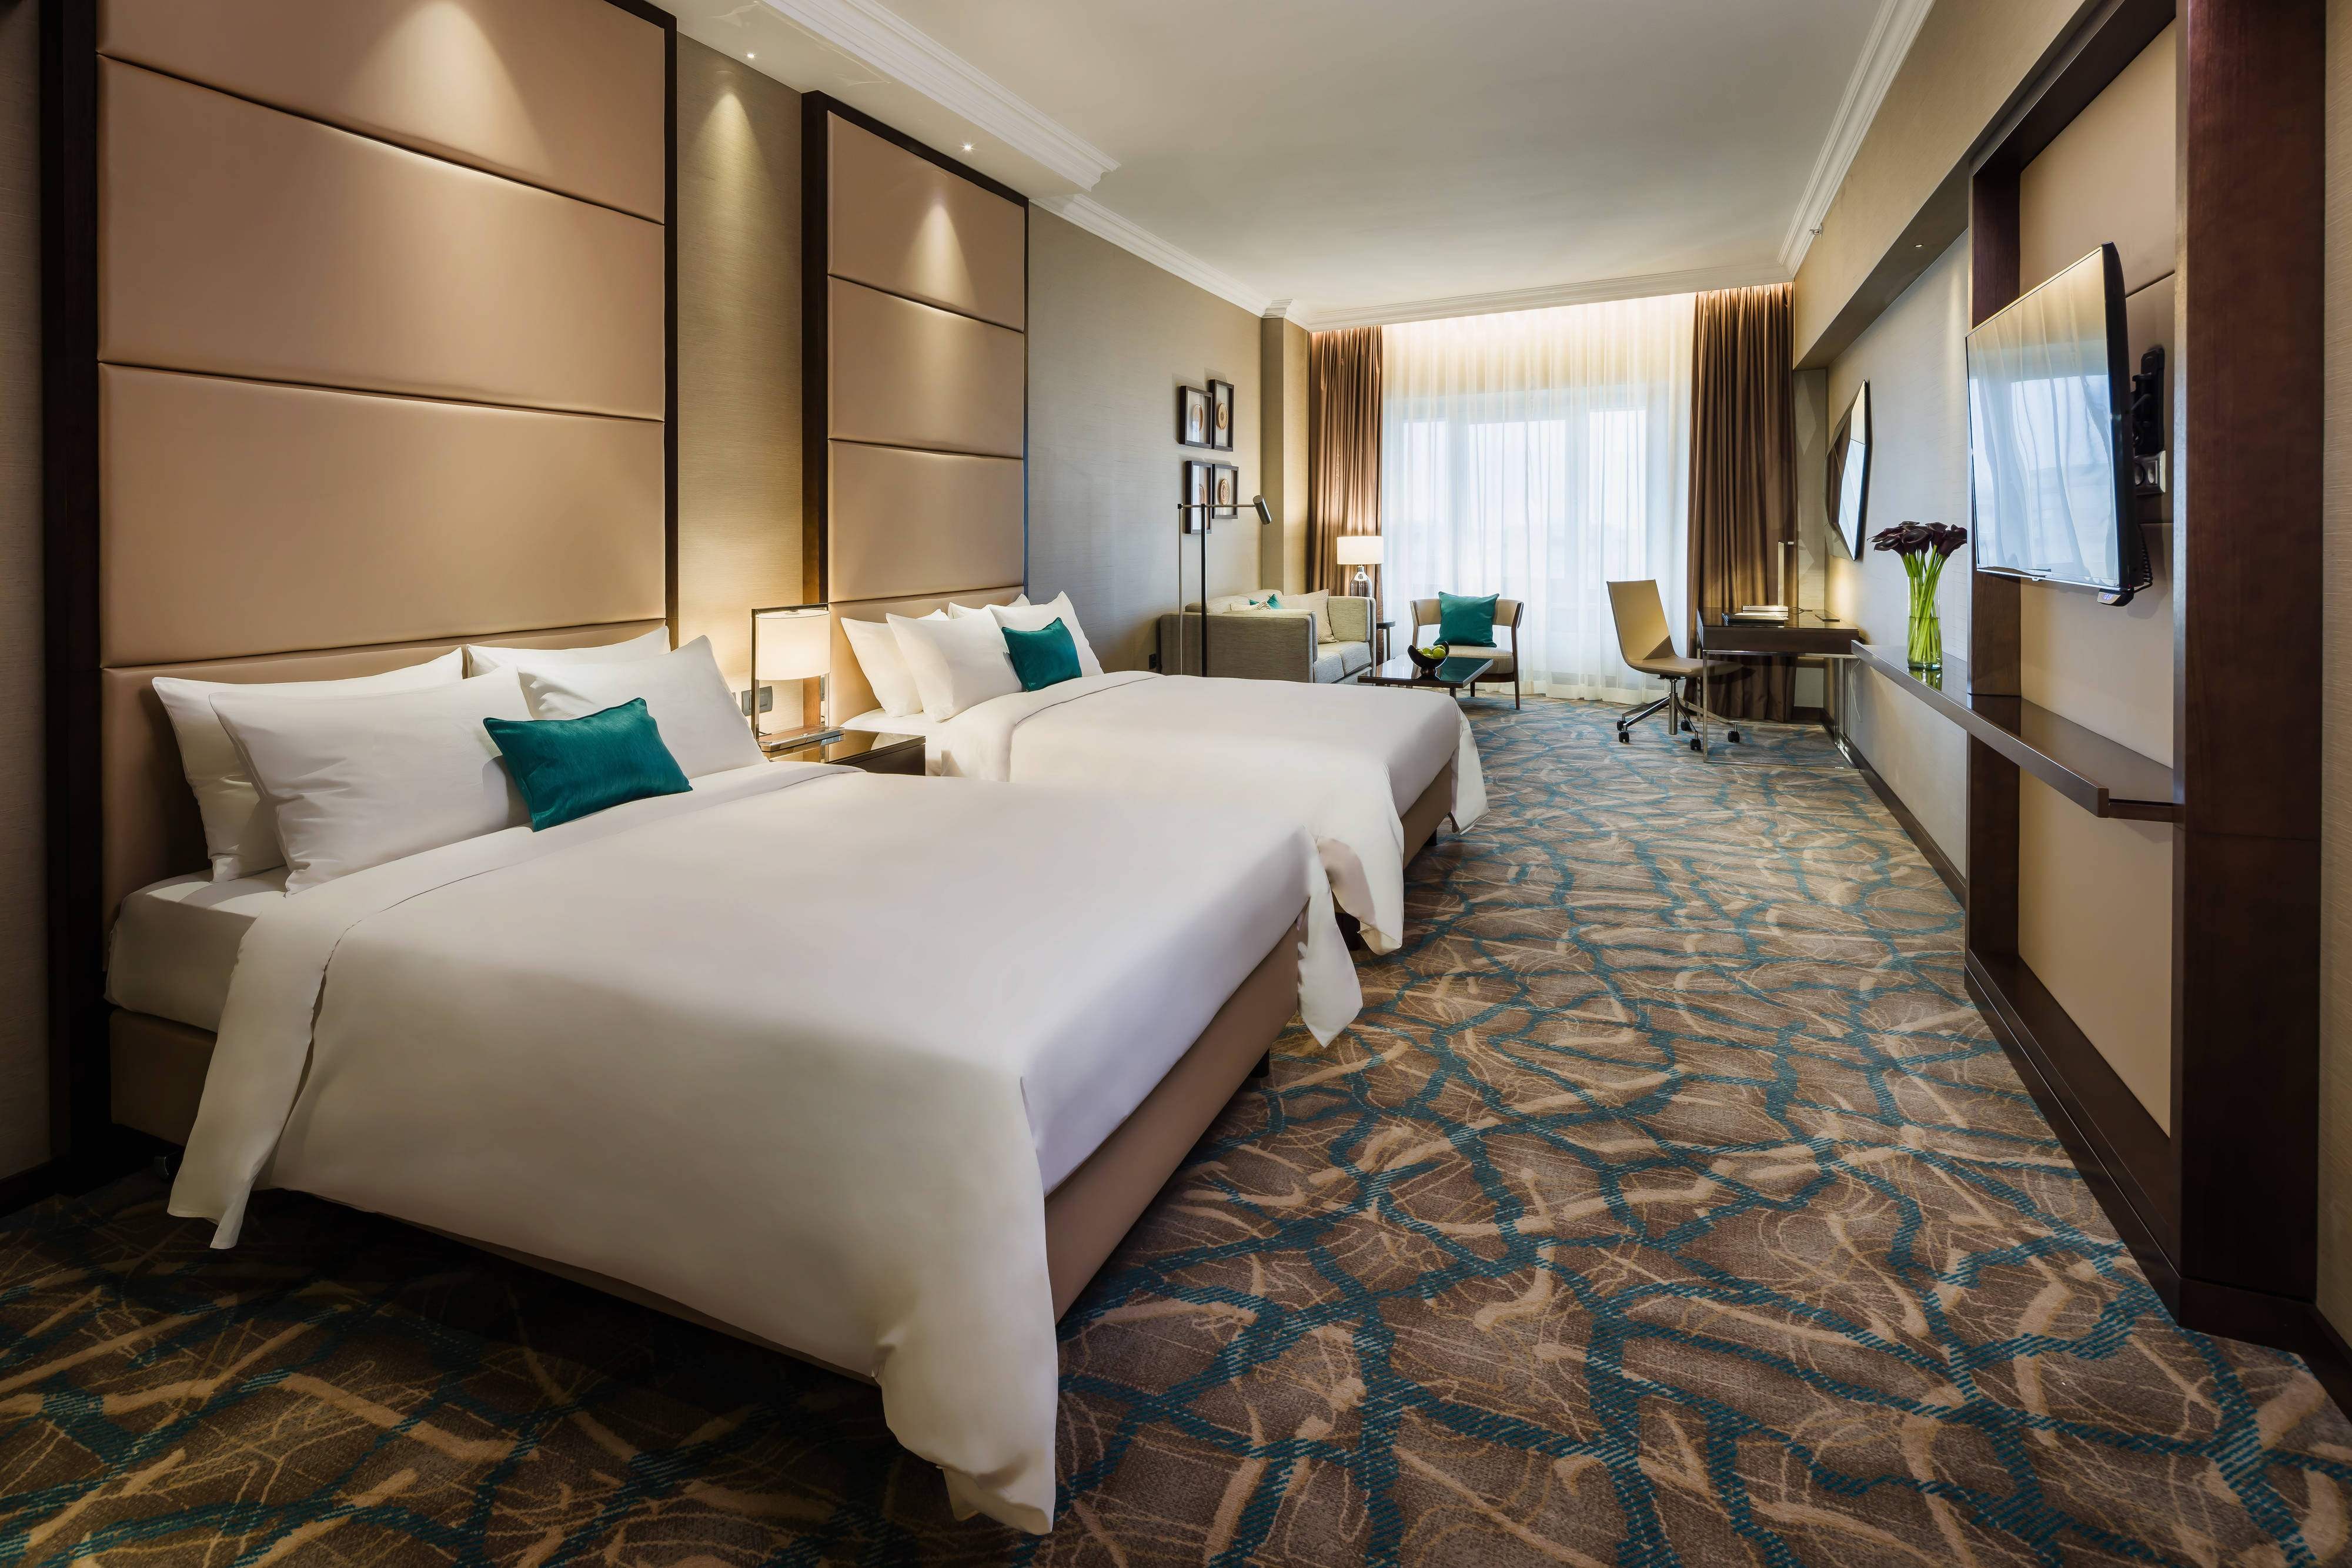 Superior Double/Double Guest Room